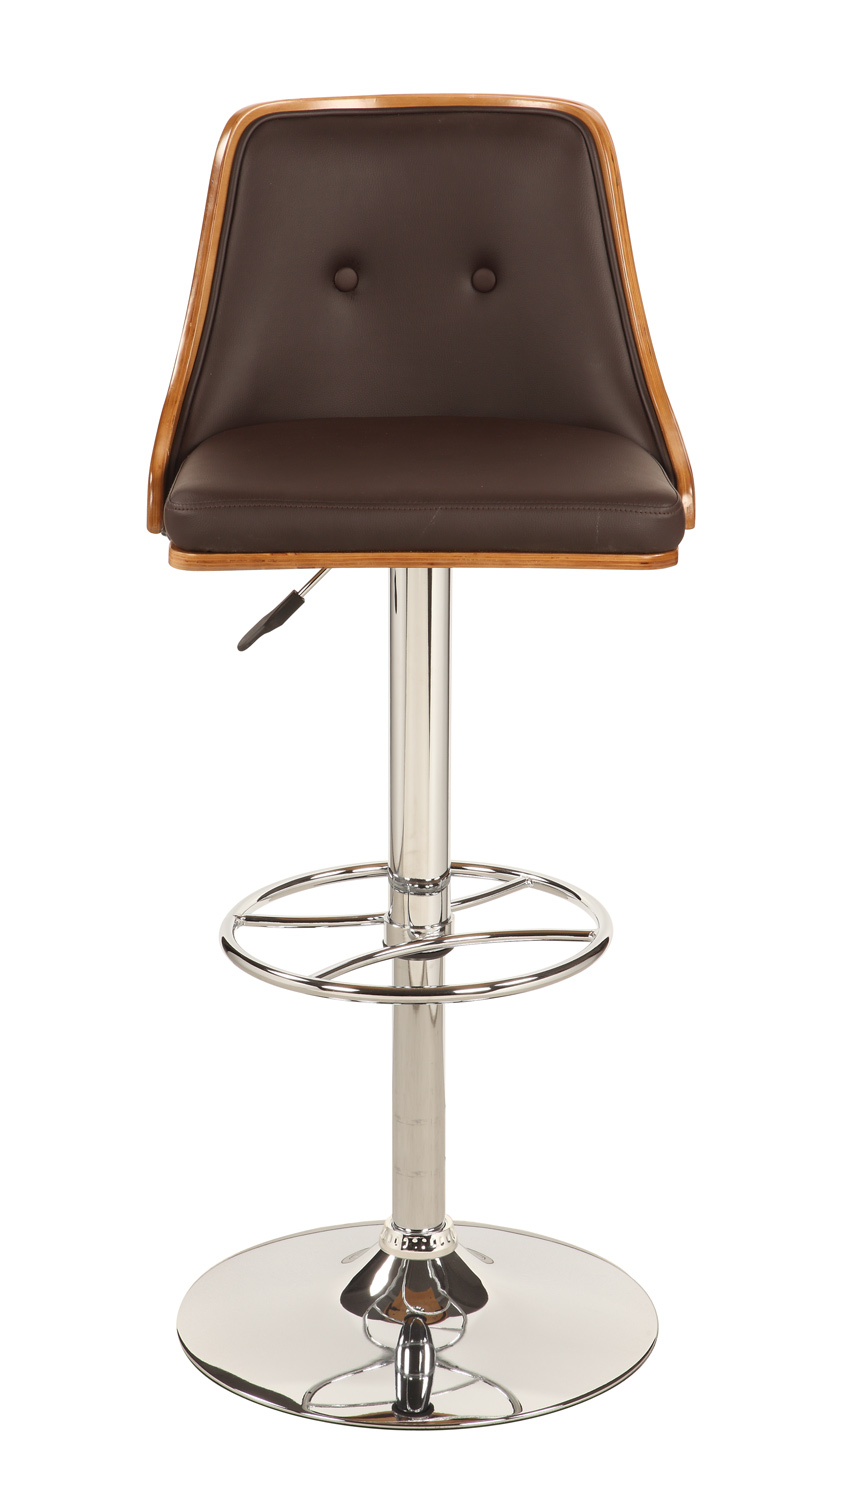 Chintaly Imports 1353 Upholstered Back Pneumatic Gas Lift Swivel Stool - Chrome/ Walnut